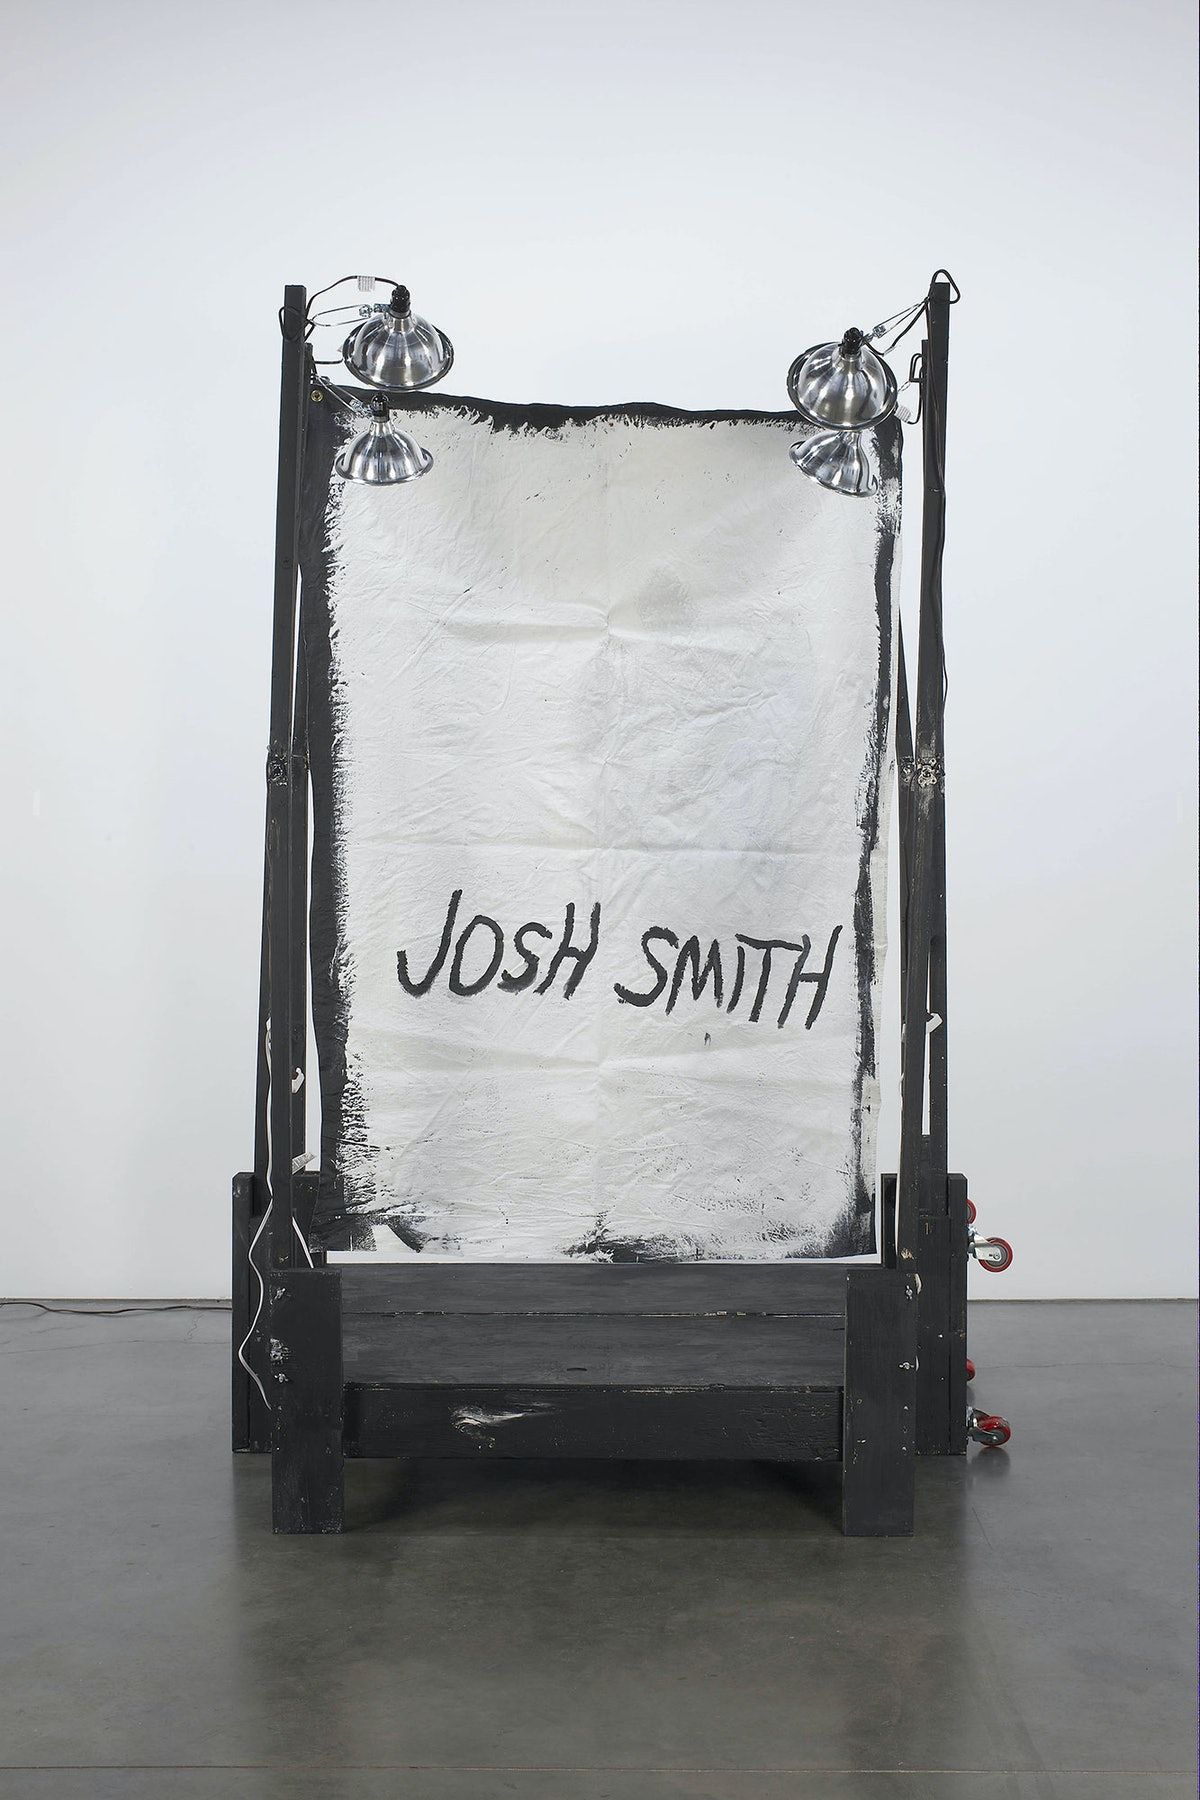 Stage Painting 1, 2011 by Josh Smith